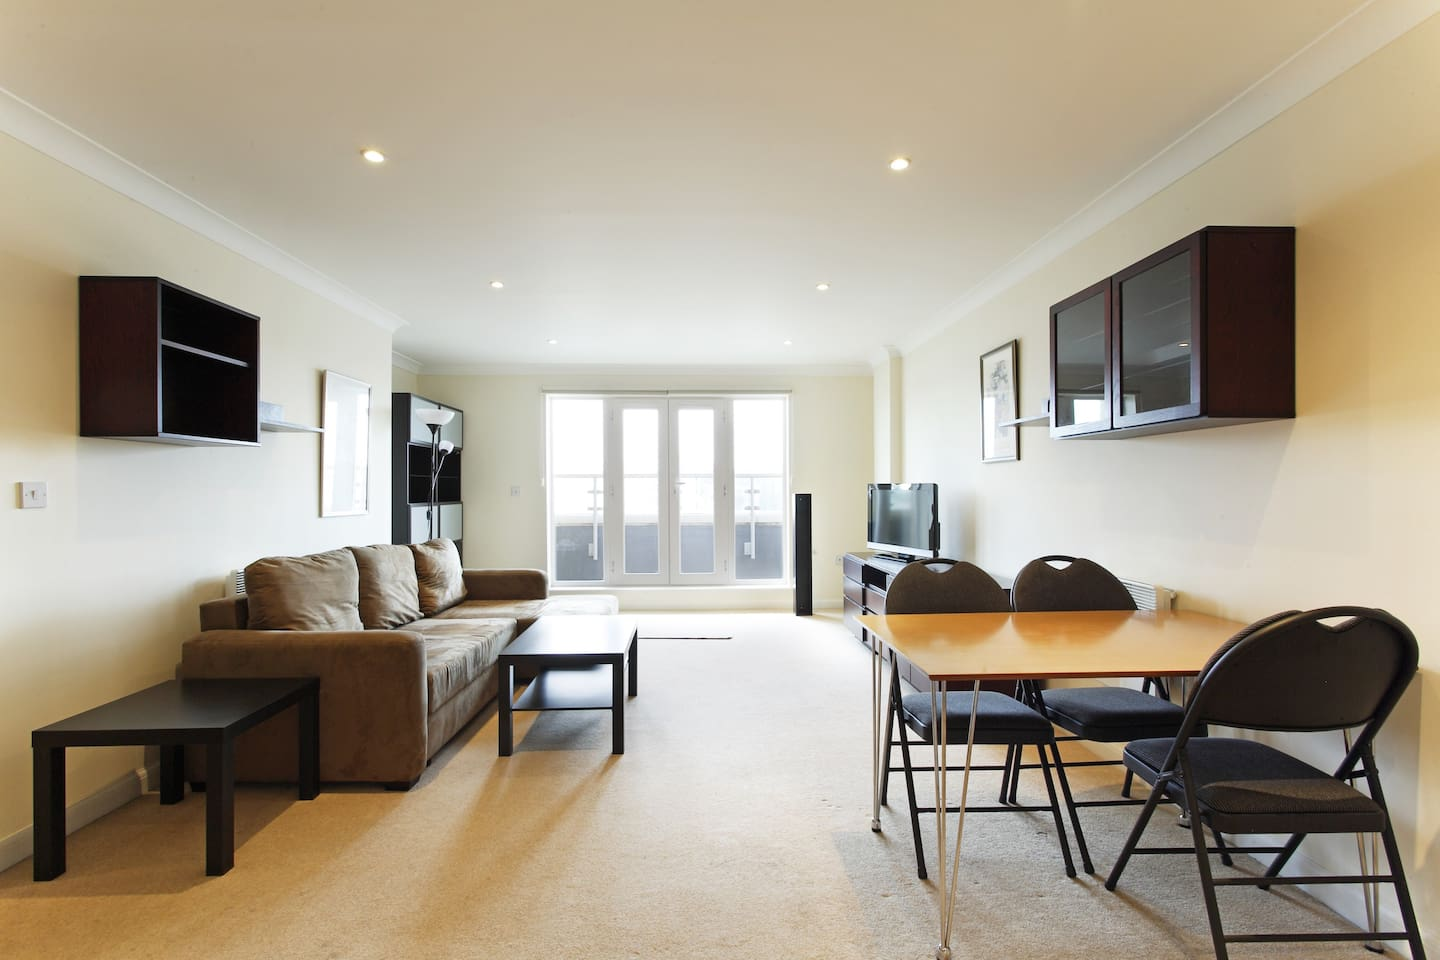 Apartment 67 With Double Sofa Bed and Patio Doors to Large Balcony